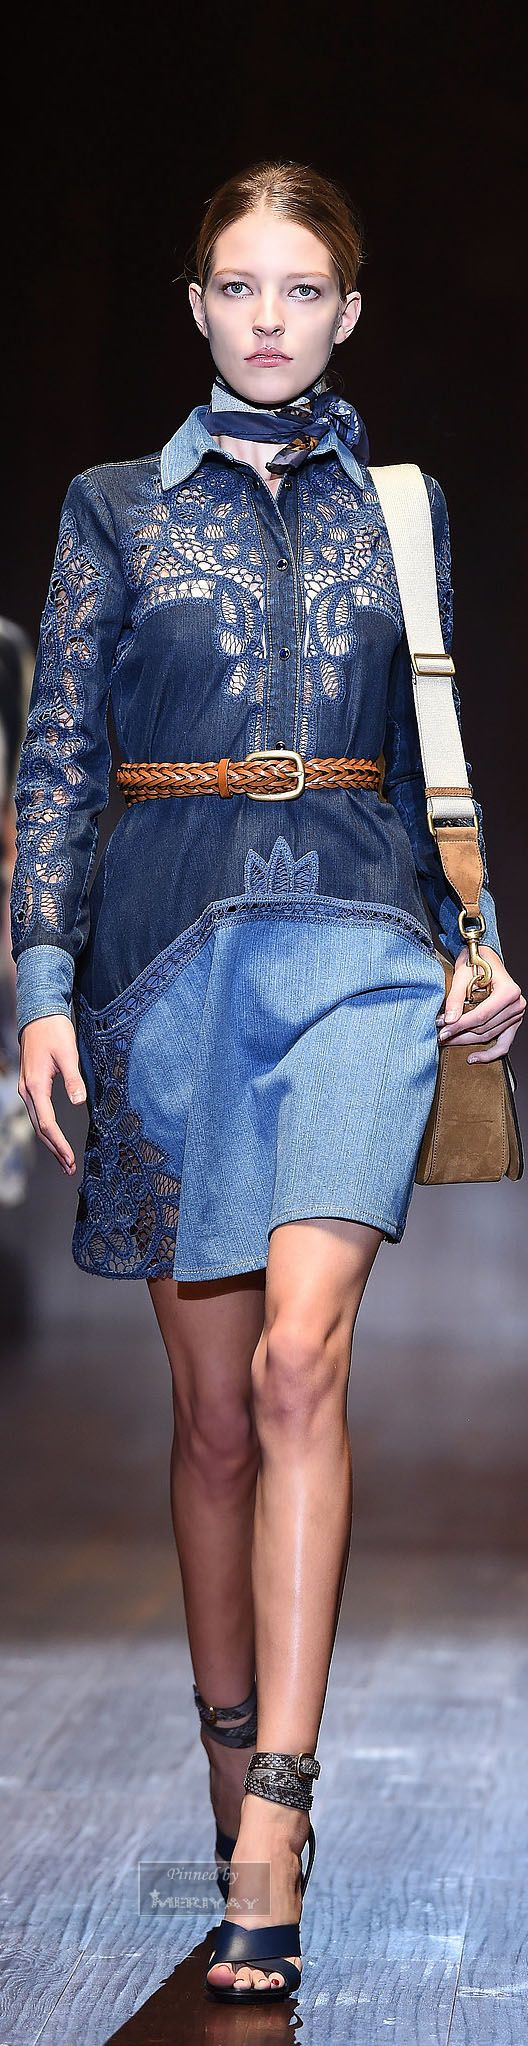 Gucci.Spring-summer 2015. Shop Shabby Shack Vintage Denim in Courtyard Antiques (formerly known as Front Porch Antiques Mall) in the Mason Antiques District. Open 7 Days, 10 A.M. – 6 P.M. (517) 676-6388 Vintage Denim for Women & Children.